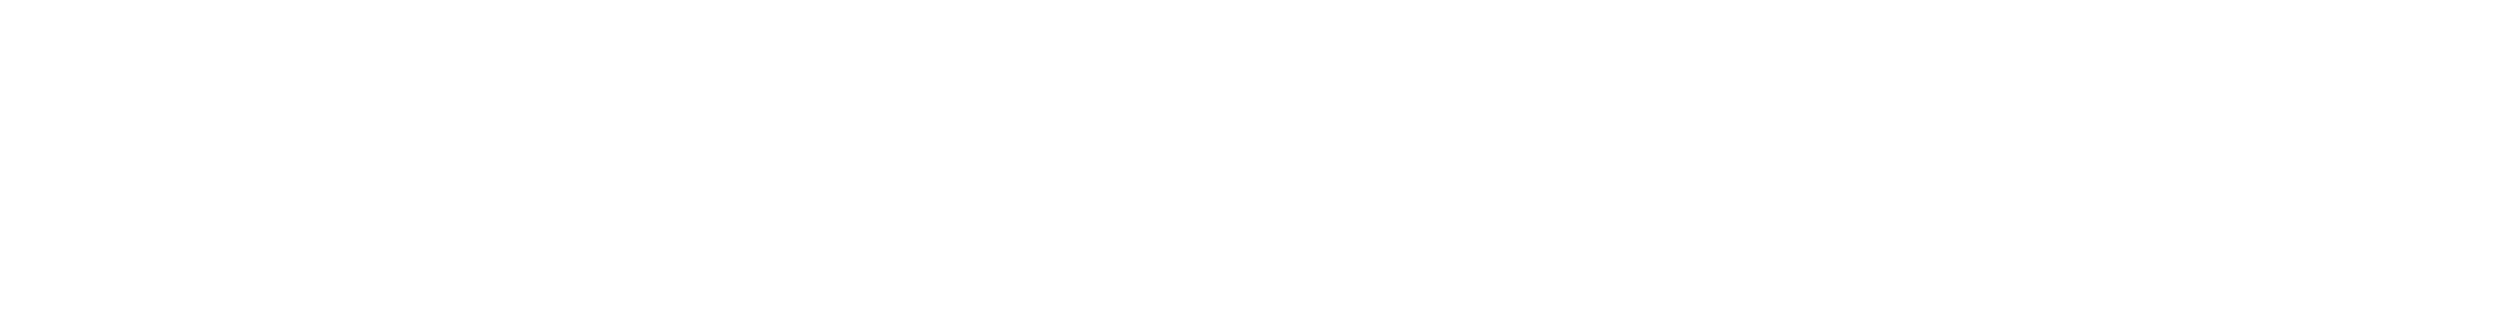 forbes white.png